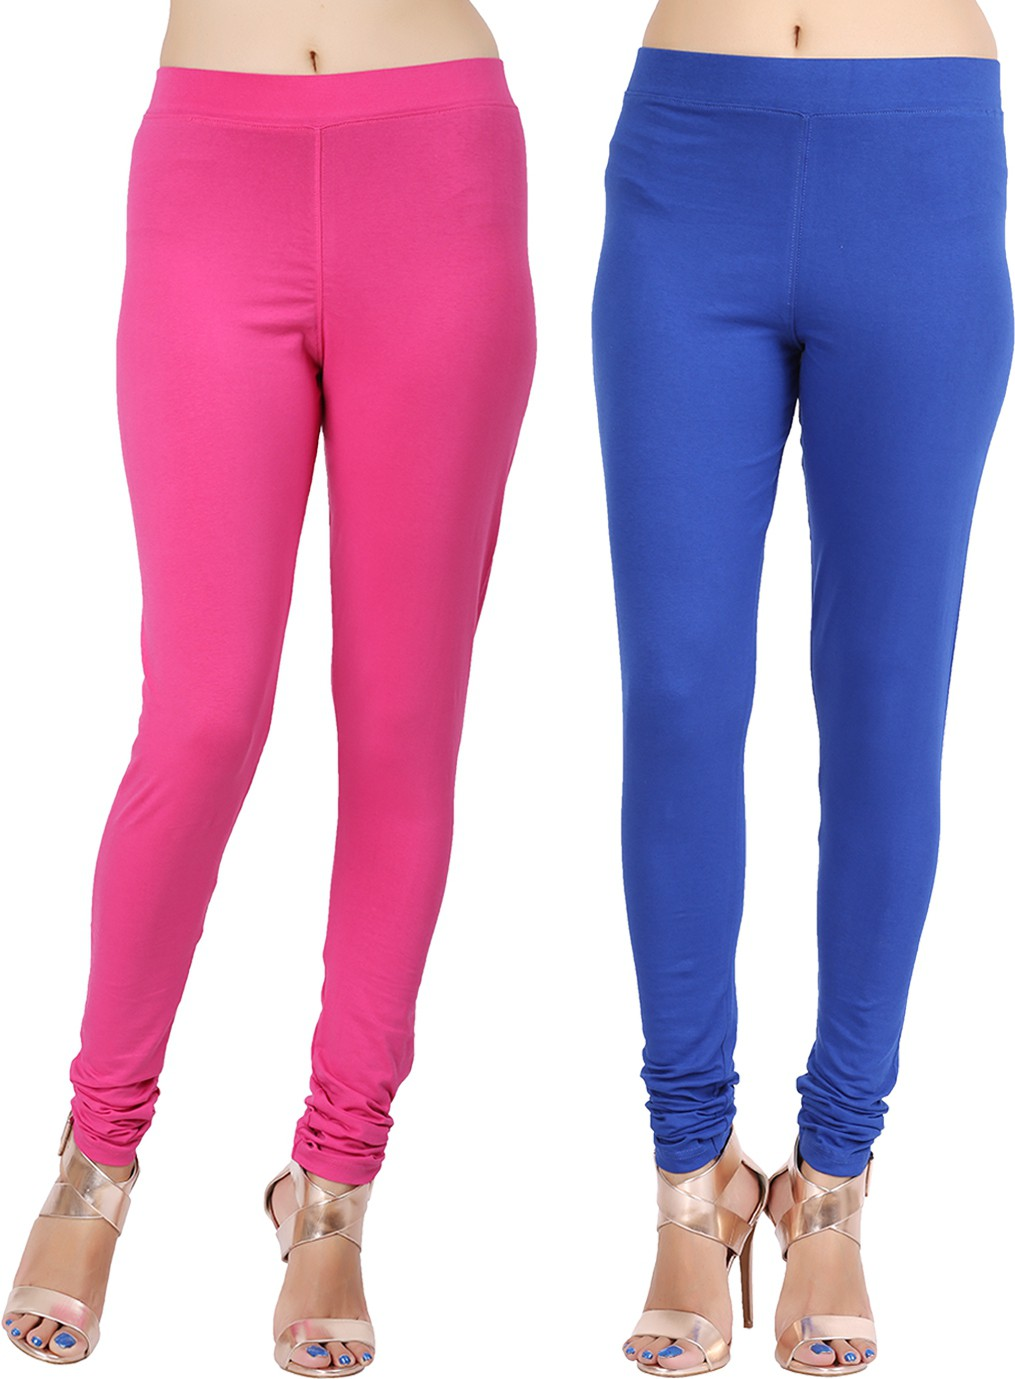 Lula Ms Womens Pink, Dark Blue Leggings(Pack of 2)